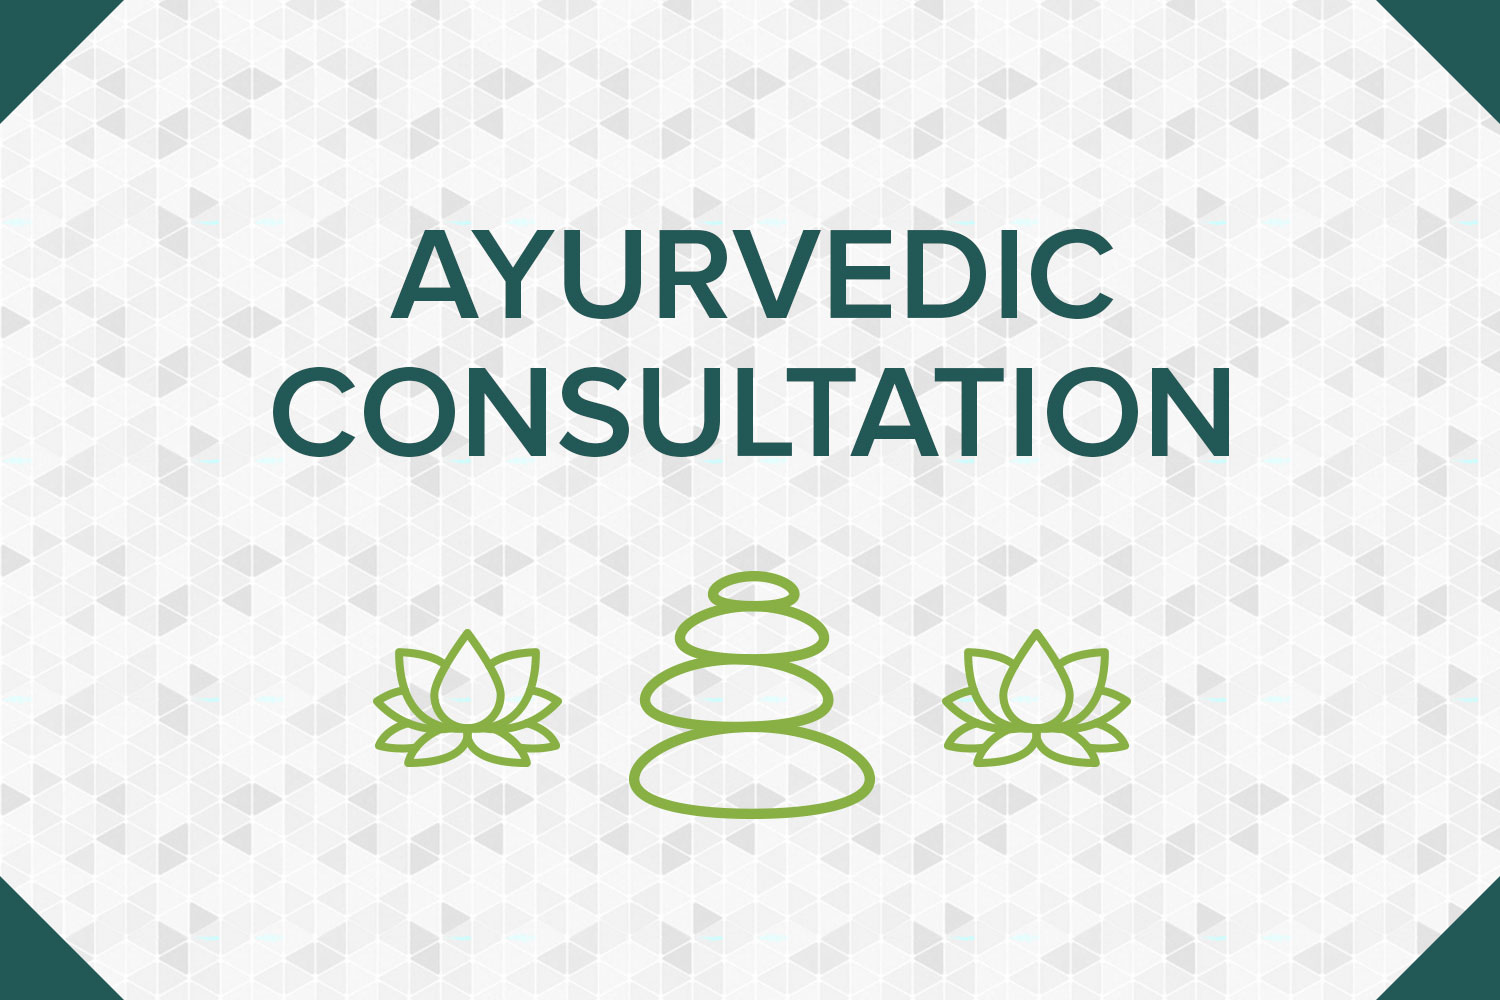 Ayurvedic Consultation - An Ayurvedic Consultation is a comprehensive exam with the intention of uncovering the root cause of what ails you, taking a step back and looking at the whole picture of your health history, lifestyle, and you as a person. Available via phone or Skype!